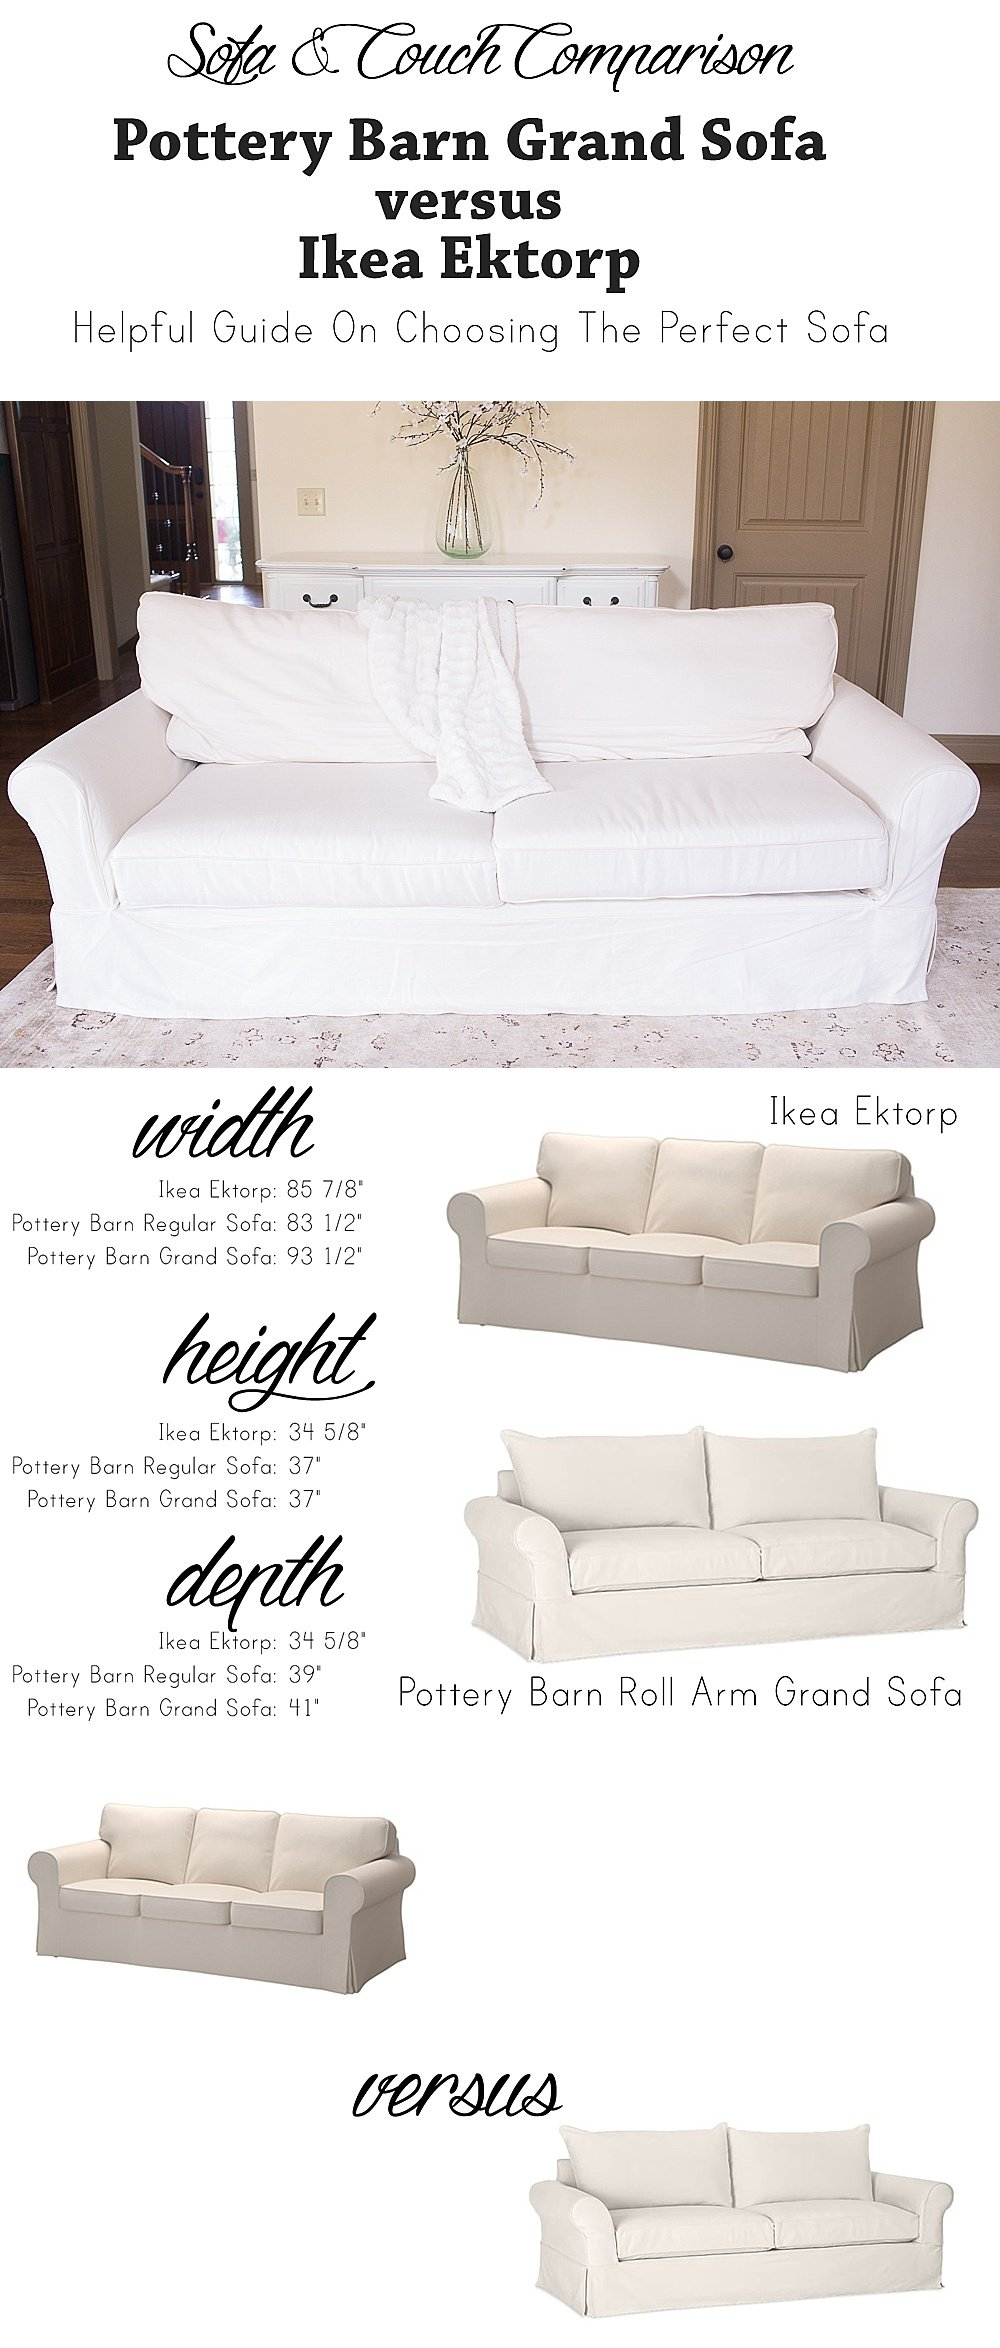 Ikea Ektorp versus Pottery Barn Grand Sofa